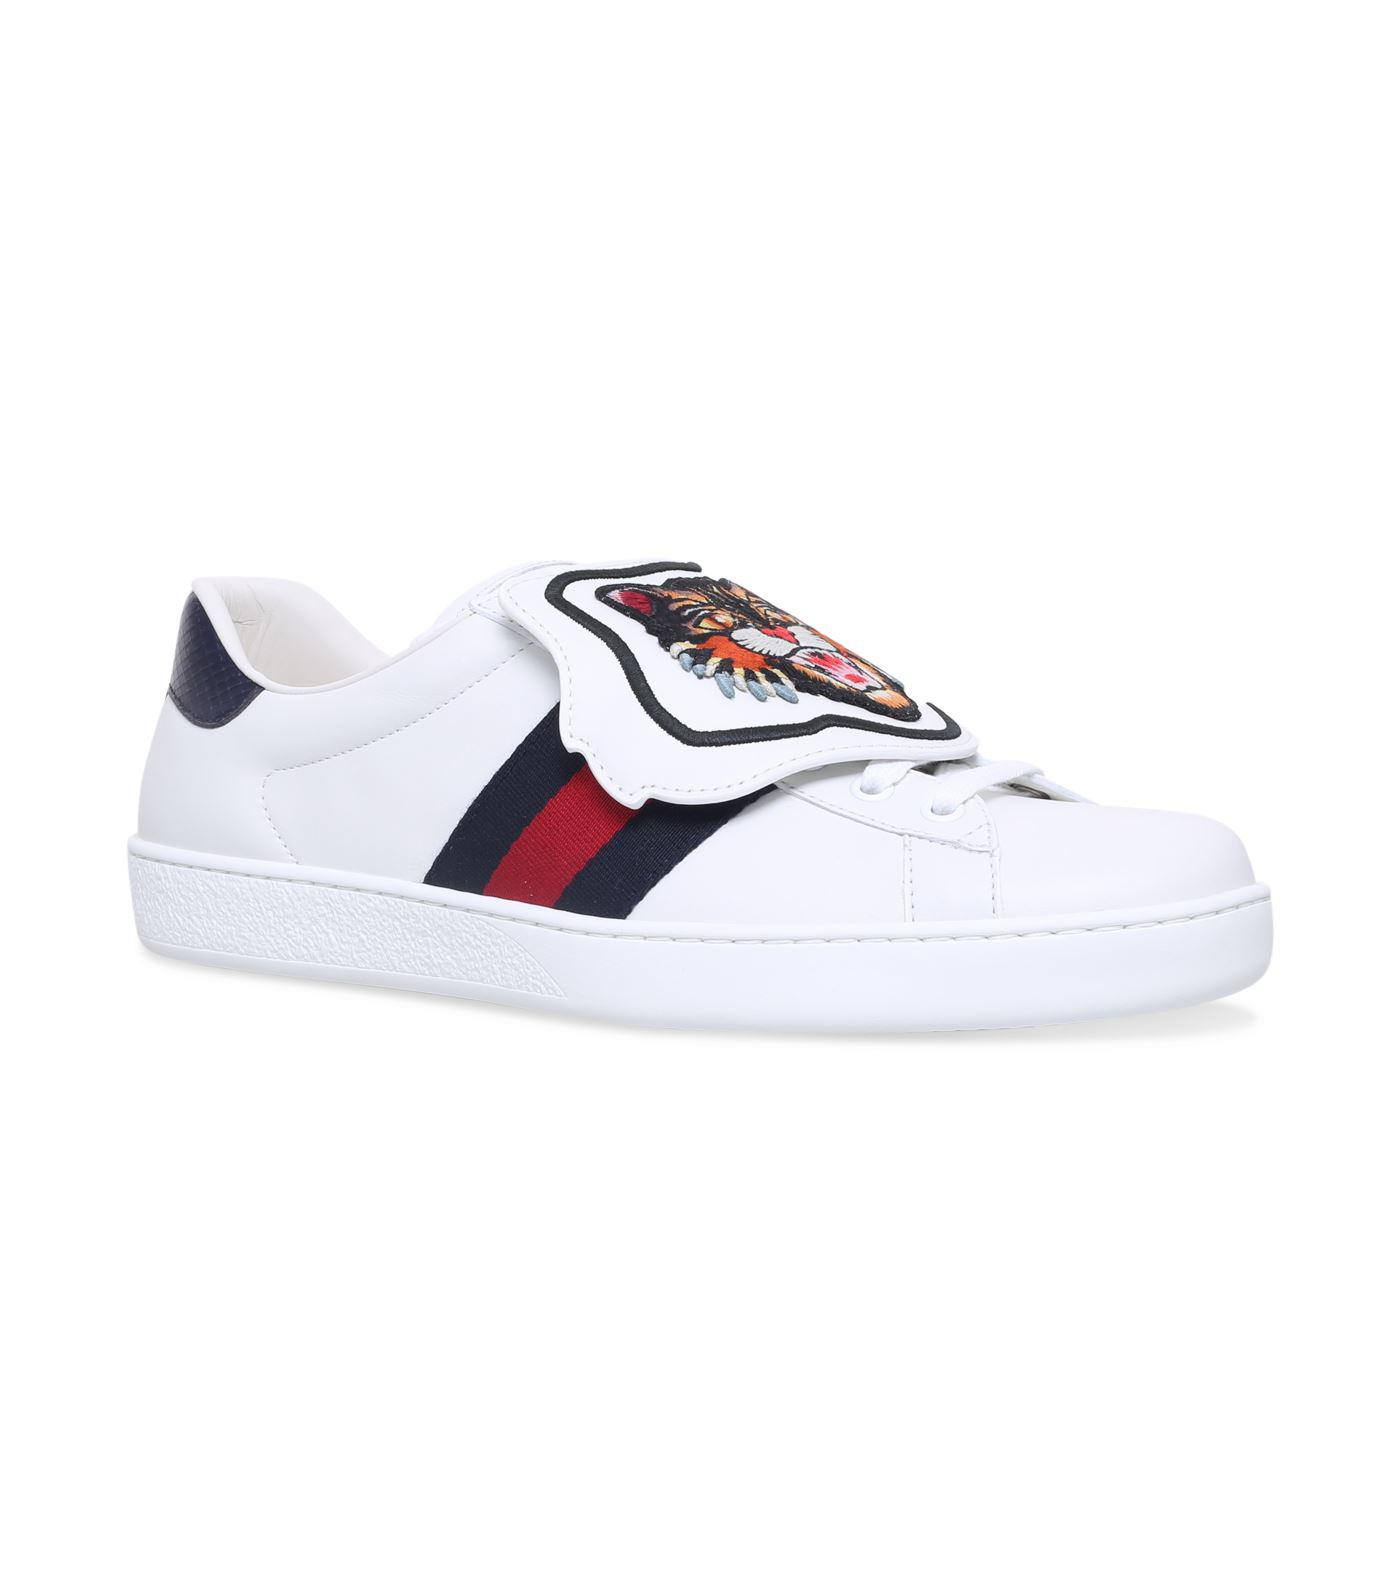 6f59fc343085 Lyst - Gucci New Ace Tiger Patch Sneakers in White for Men